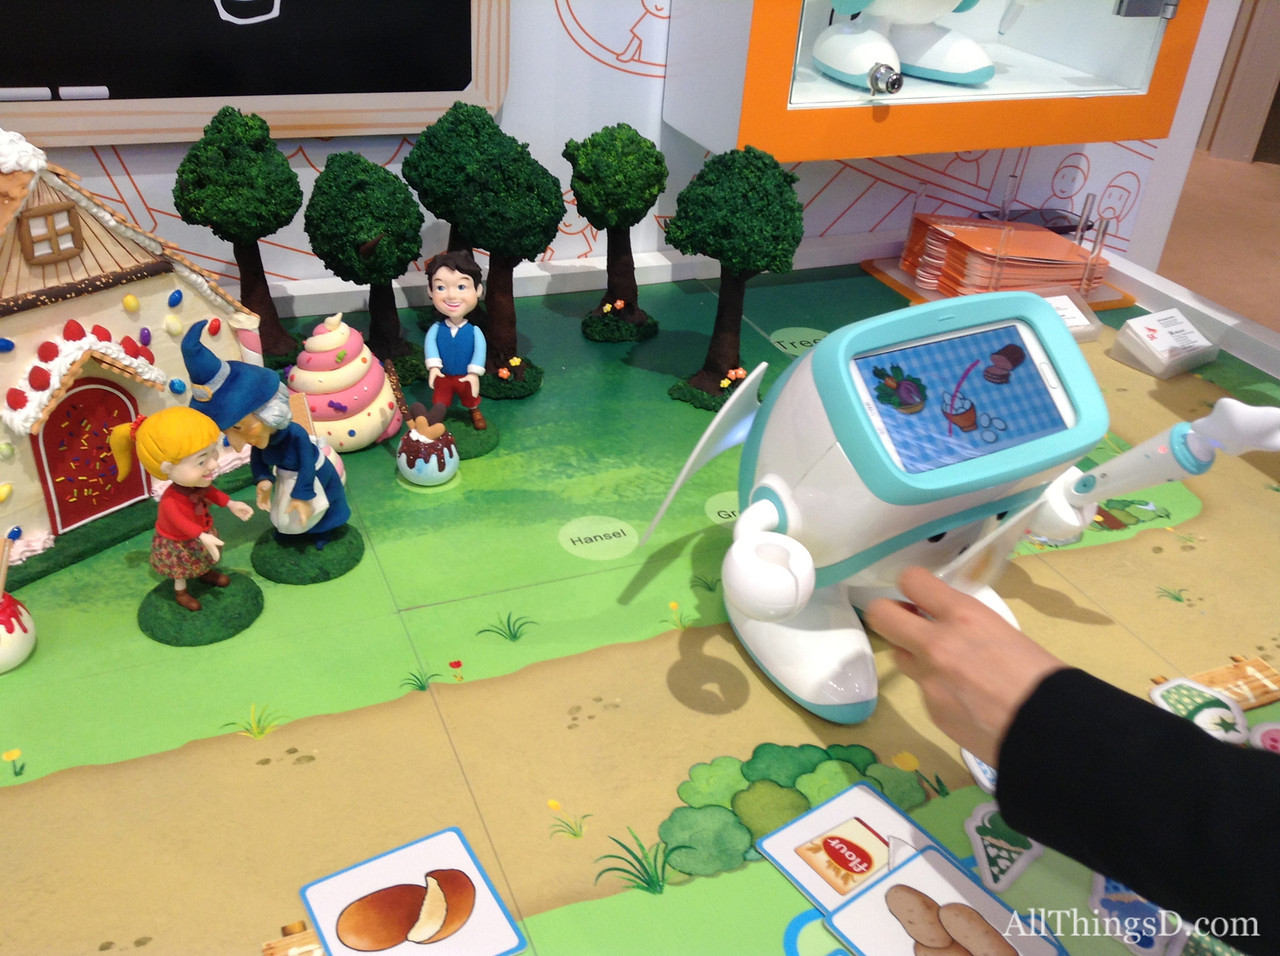 The SK Telecom robot, due out later this year, can interact with specially tagged objects, such as this one.